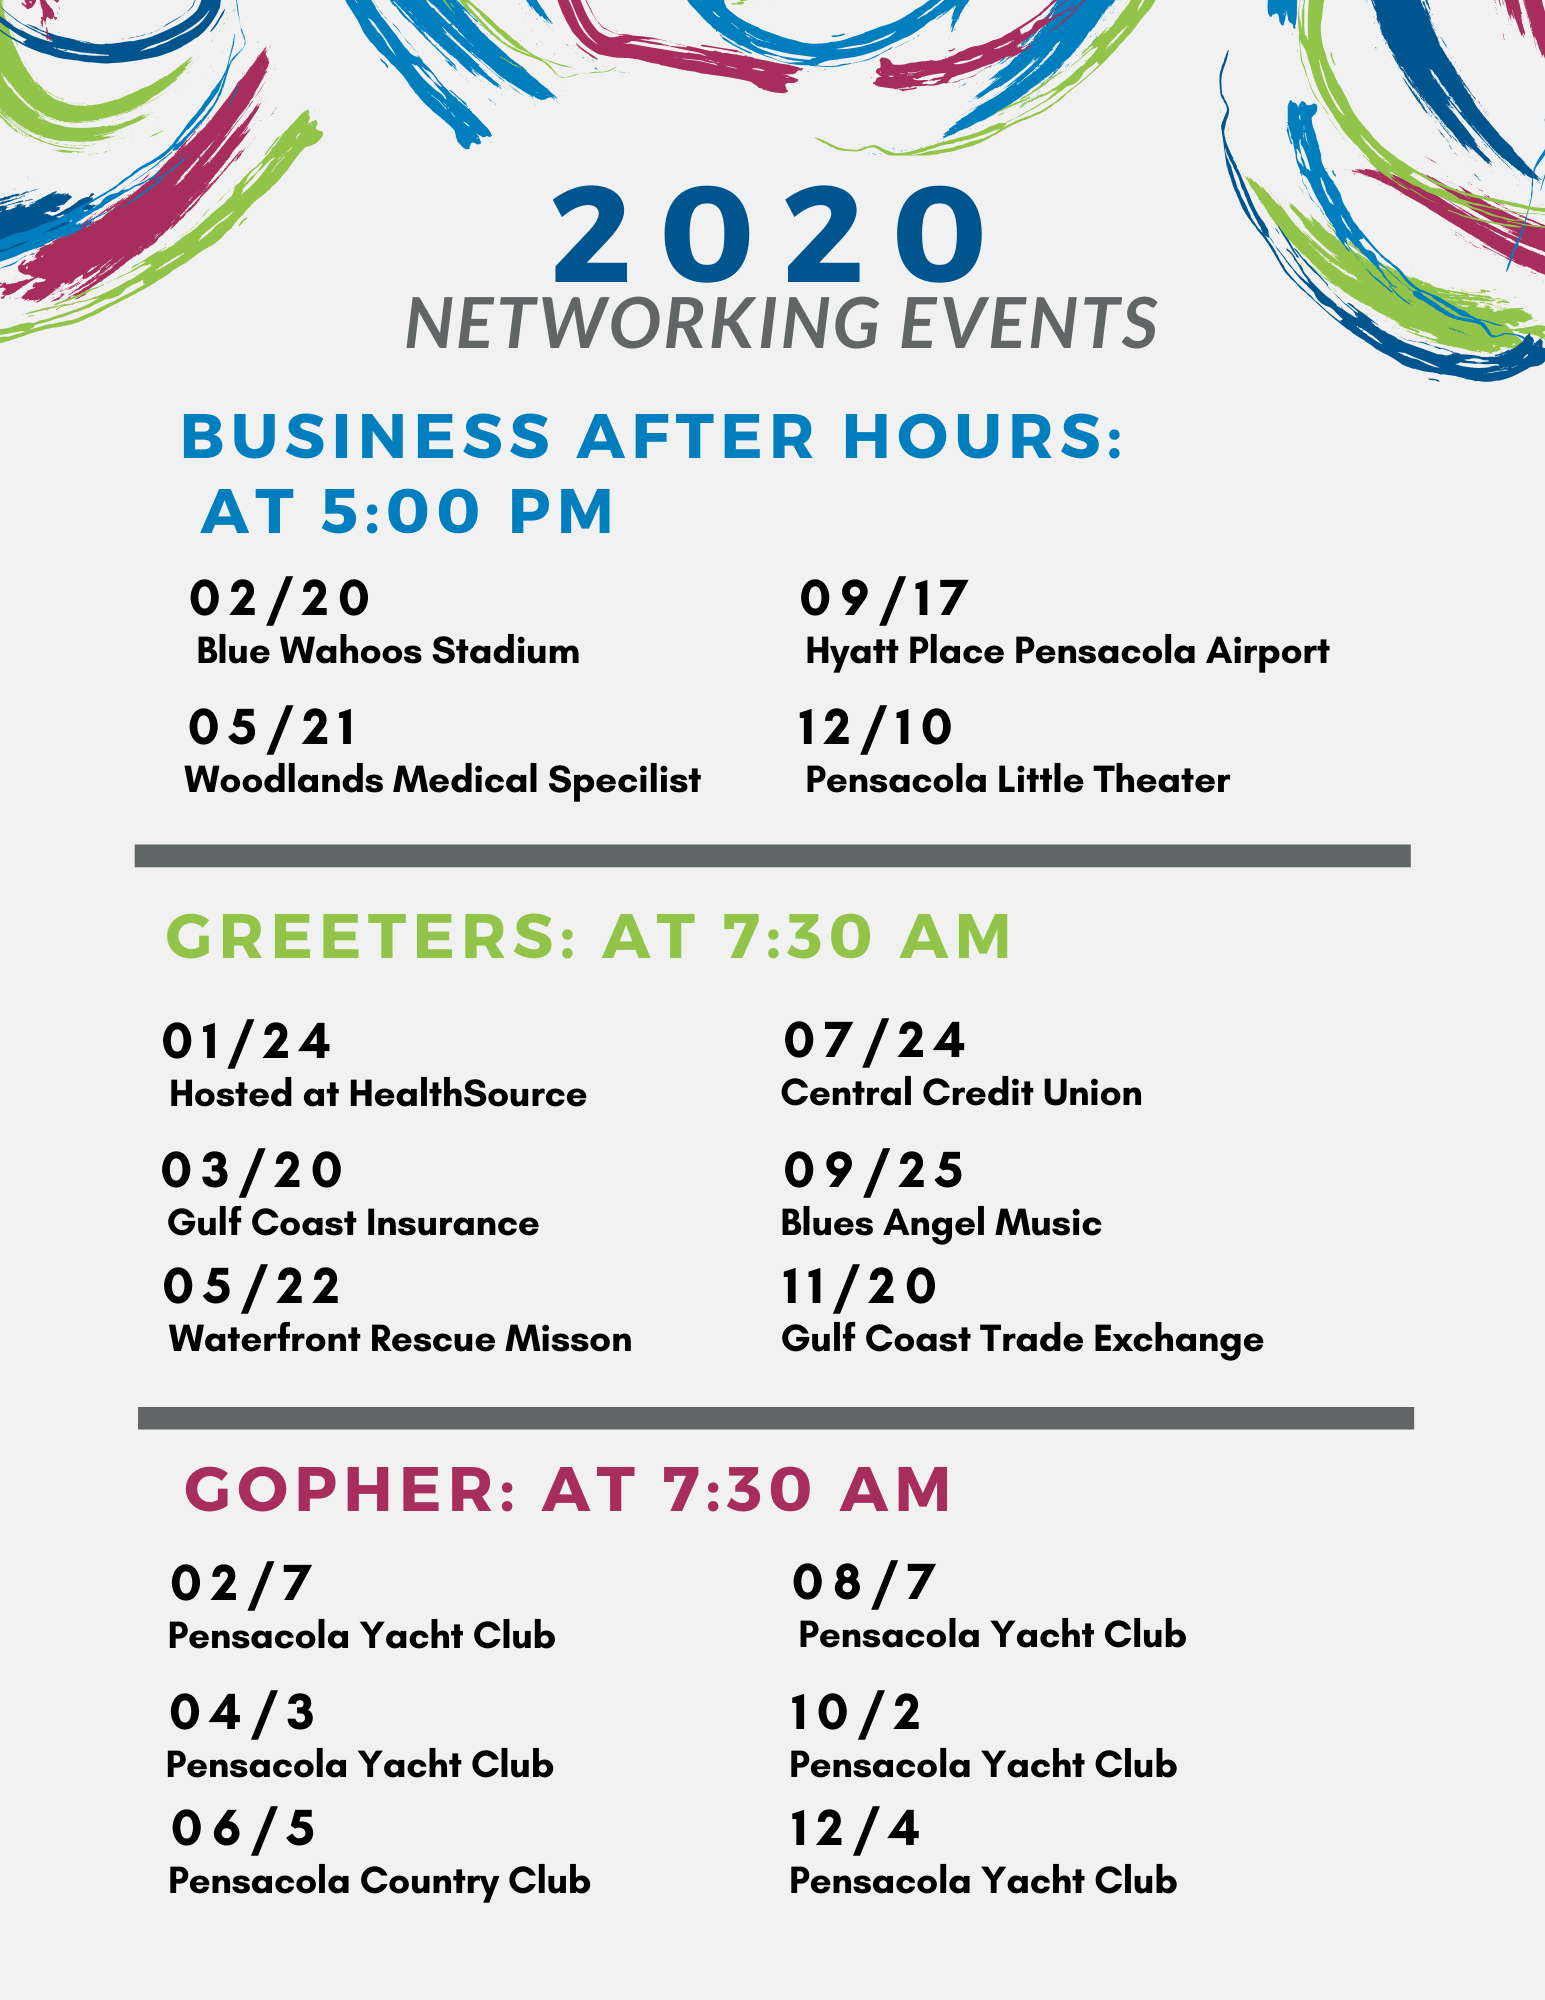 2020 Networking events